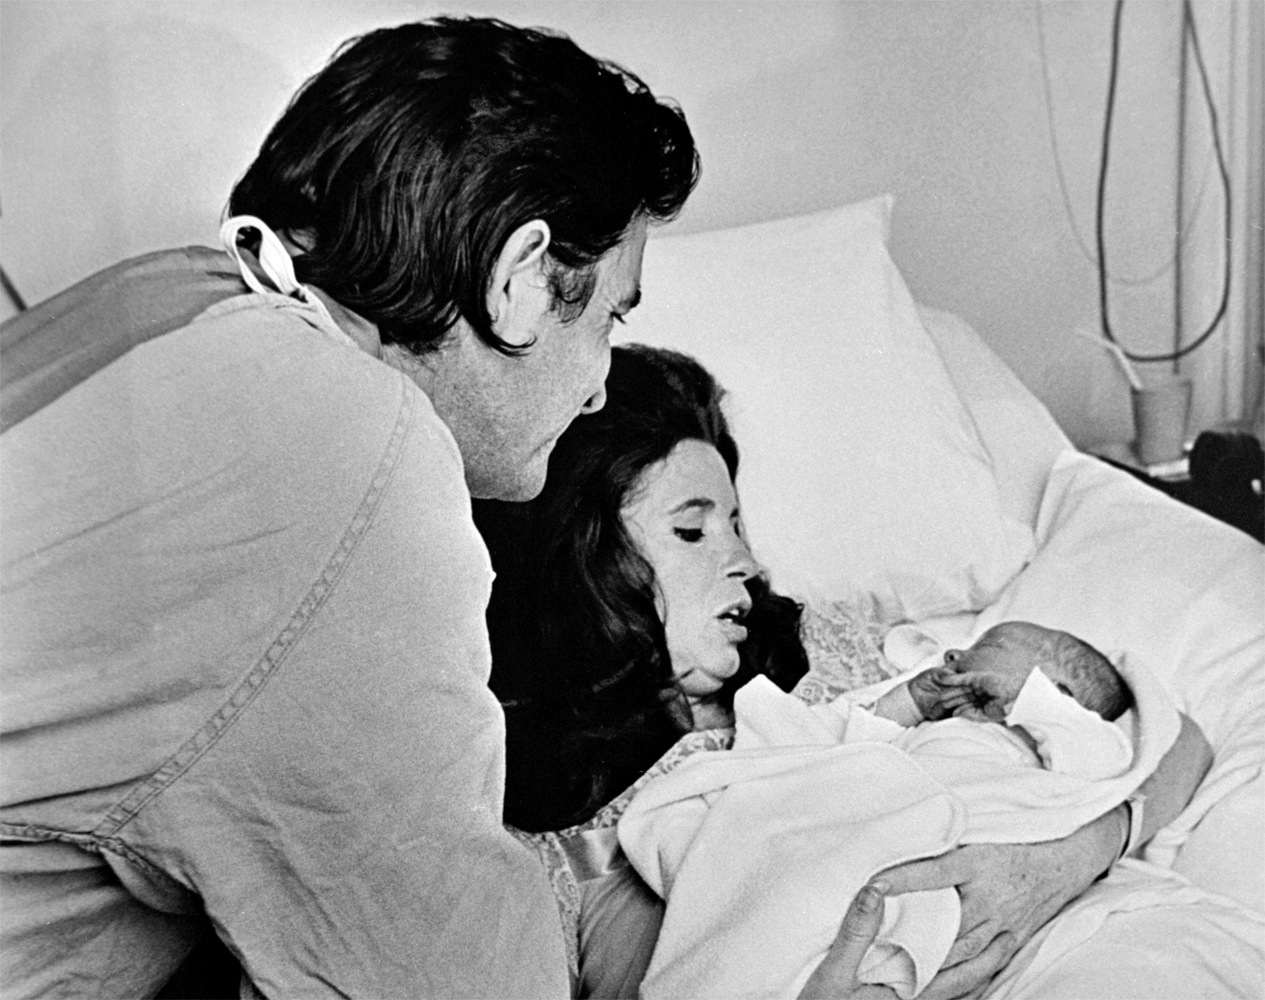 With June and newborn son John Carter Cash, March 1970.